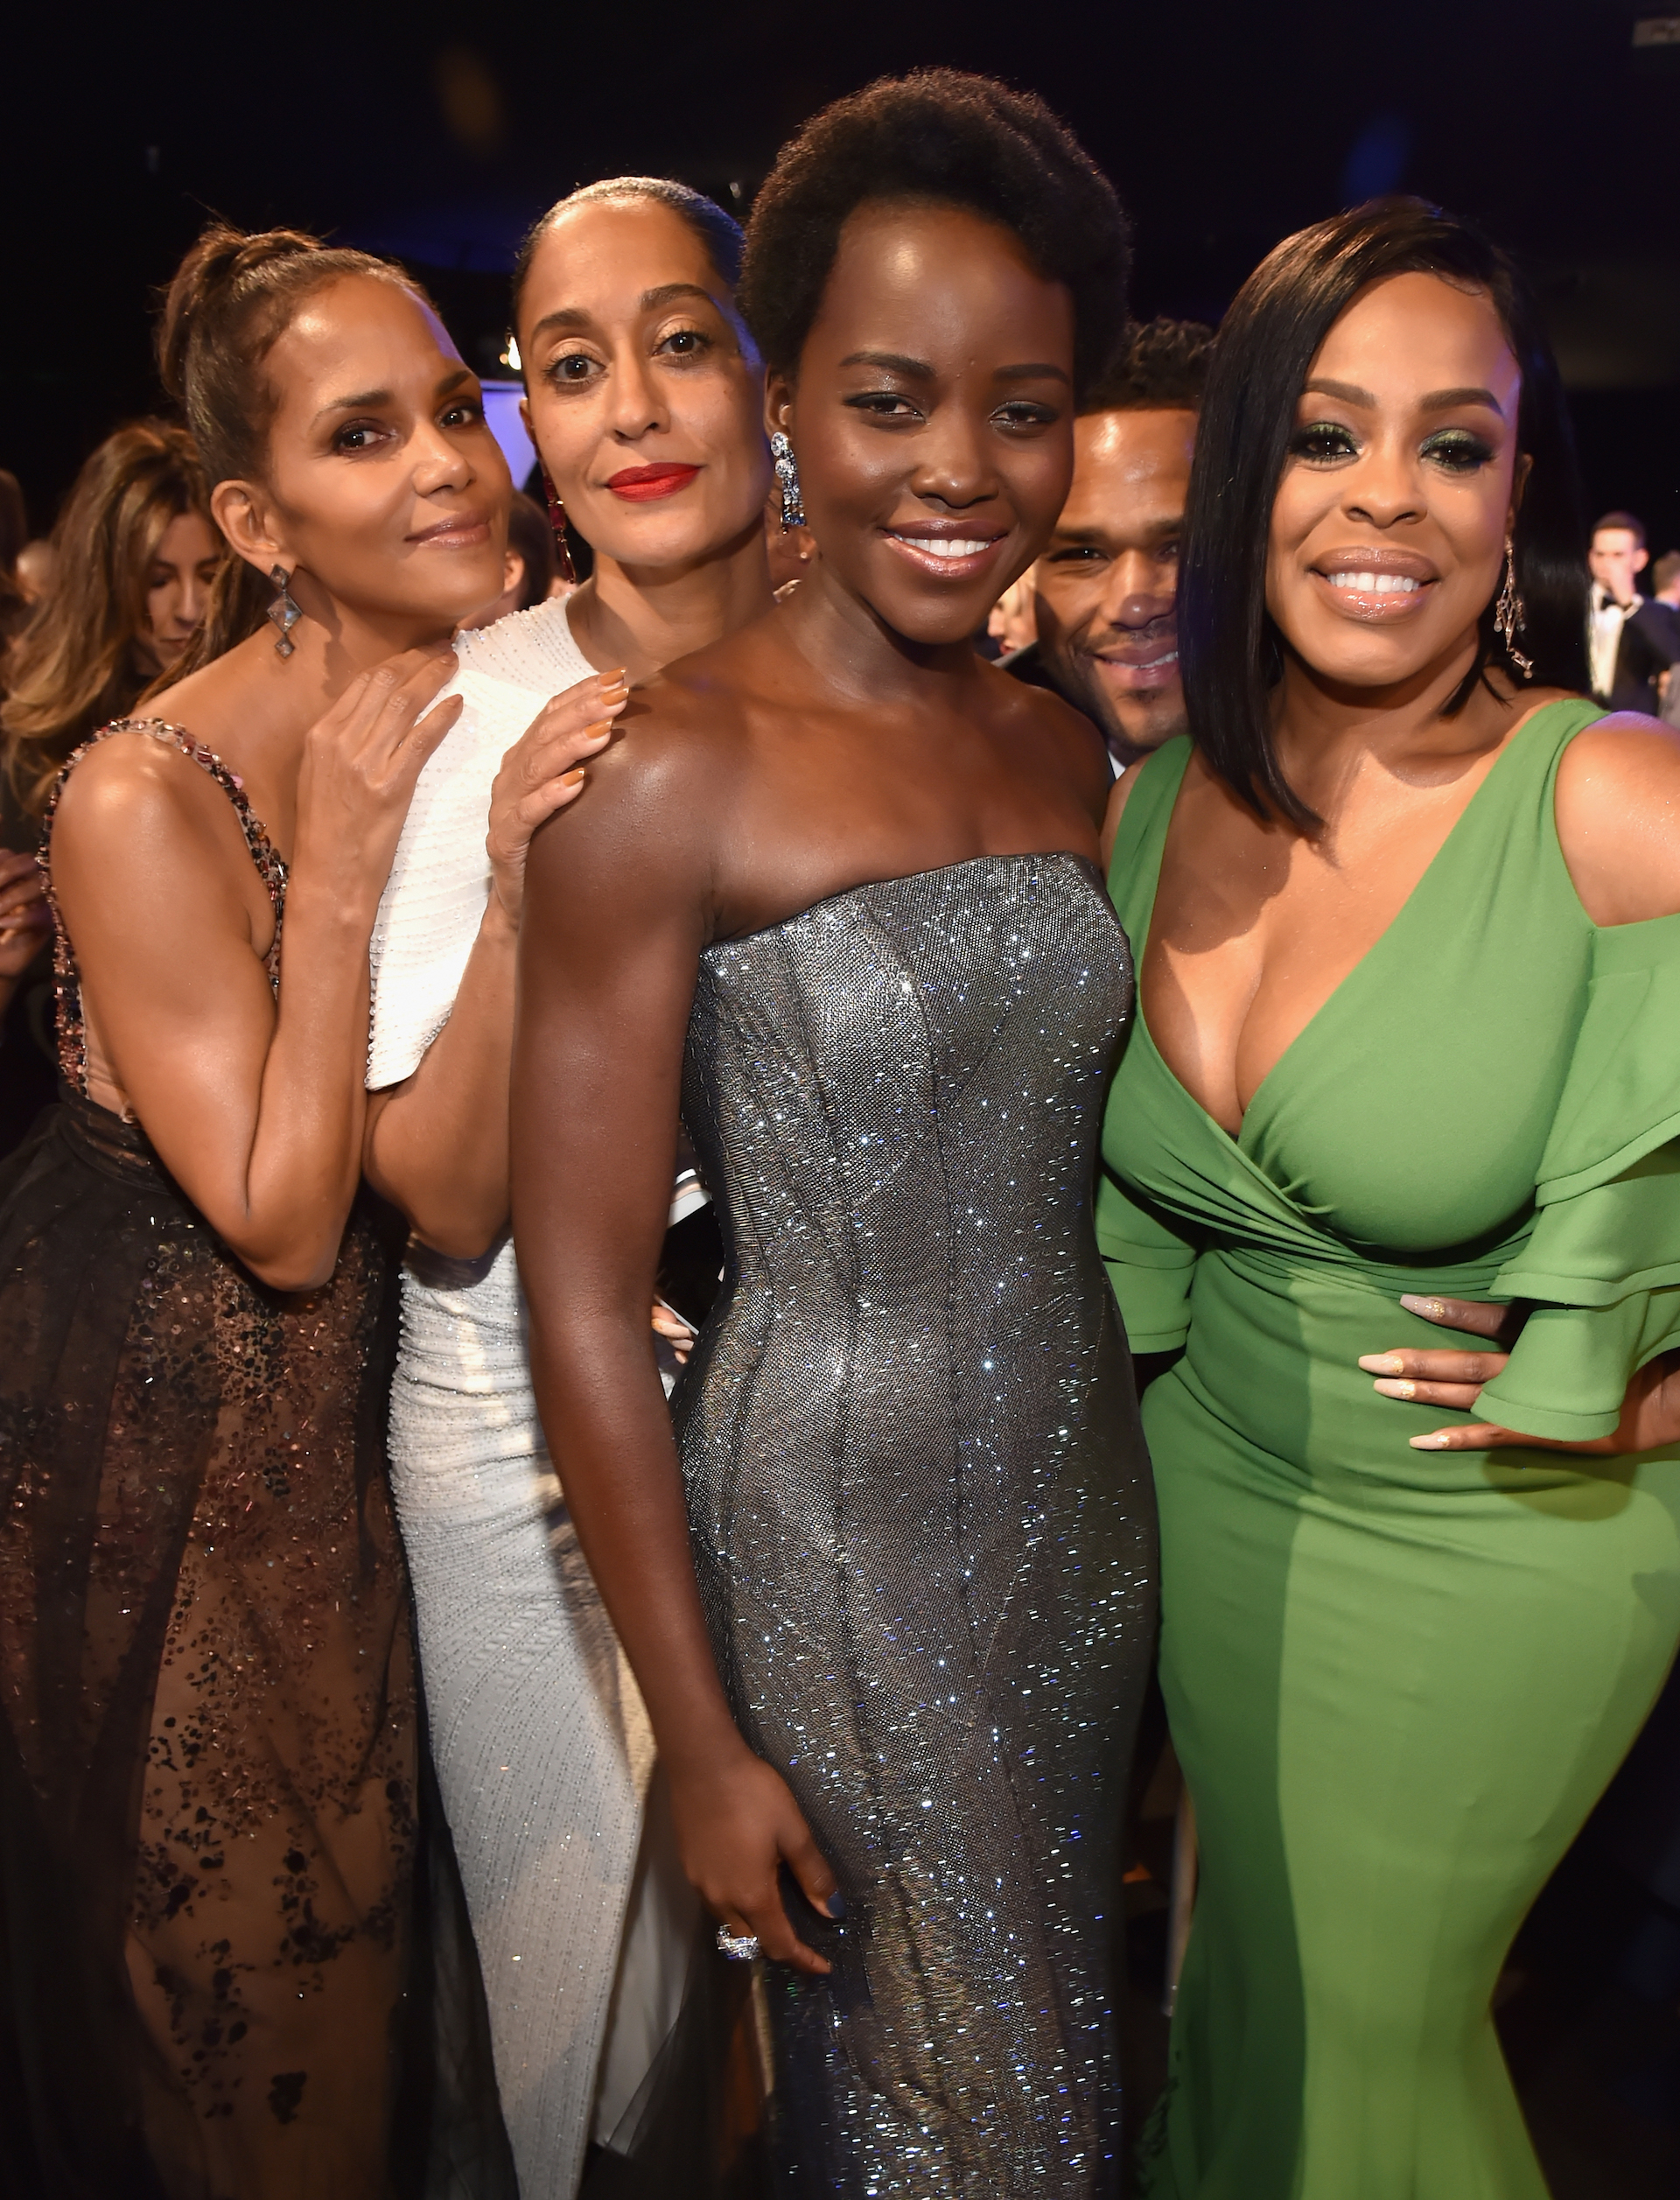 Chicas poderosas: Halle Berry, Tracee Ellis Ross, Lupita Nyong'o y Niecy Nash. Foto by Kevin Mazur/Getty Images for Turner Image.